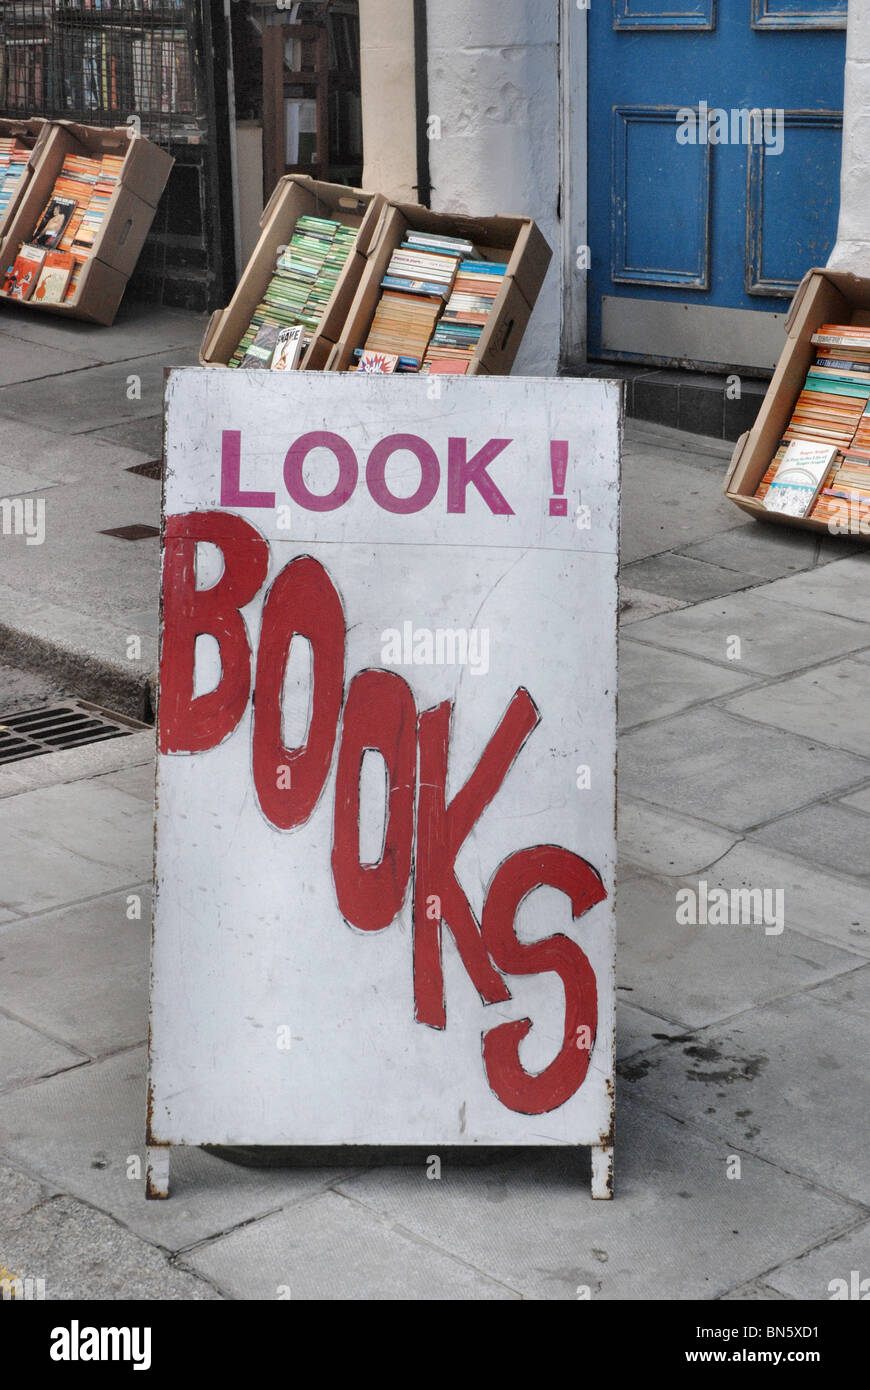 'Look! Books' sign outside a secondhand bookshop in Edinburgh. - Stock Image